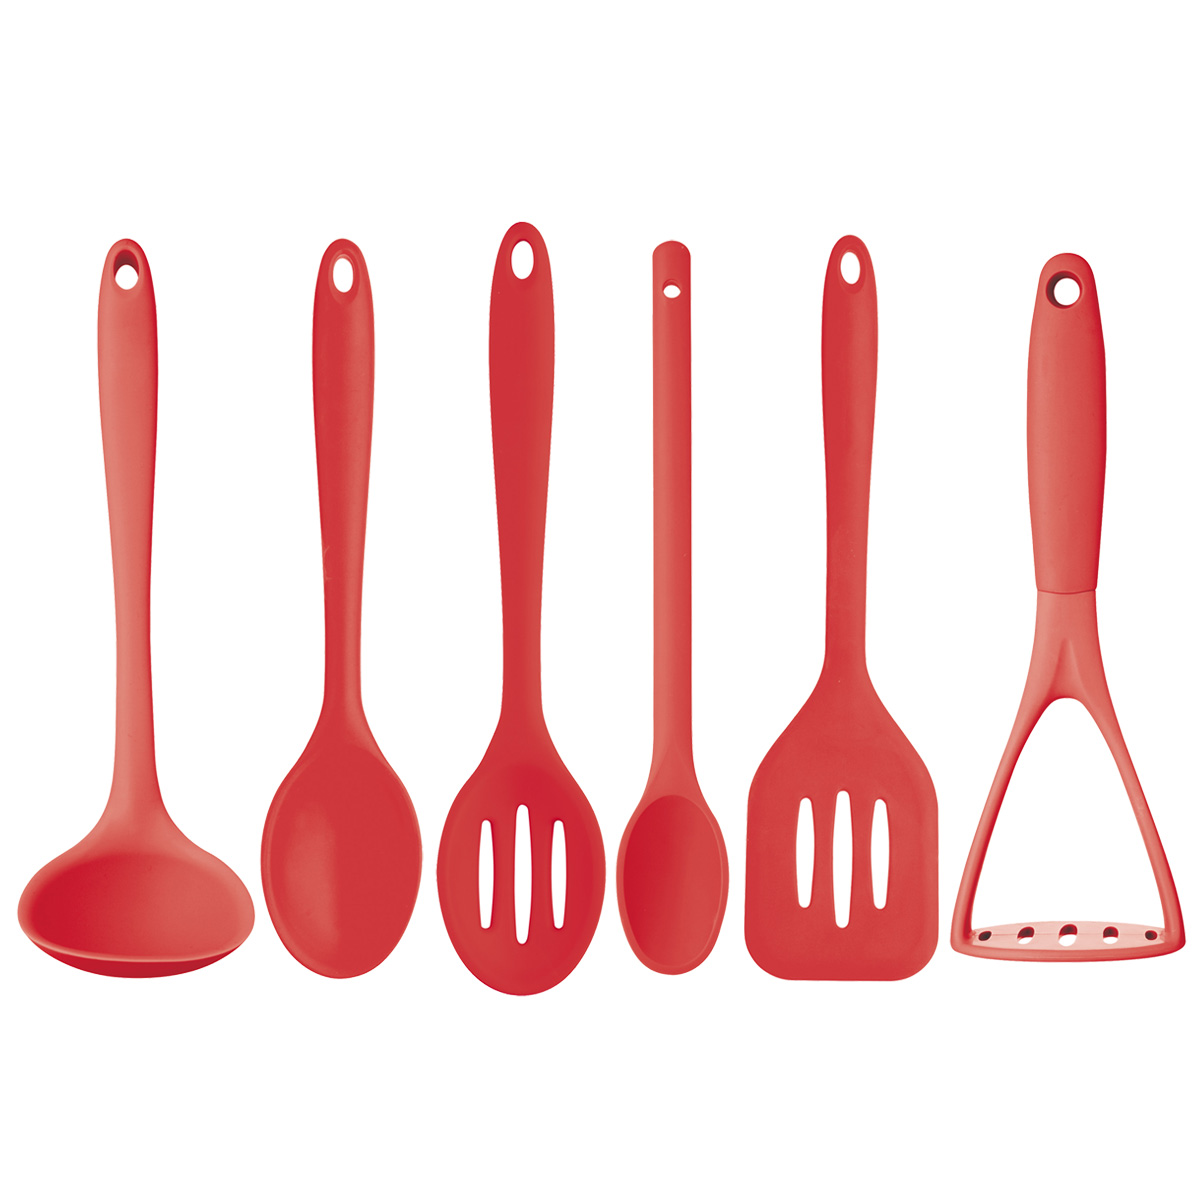 Red 6 Pack Silicone Cooking Utensils Unique Home Living